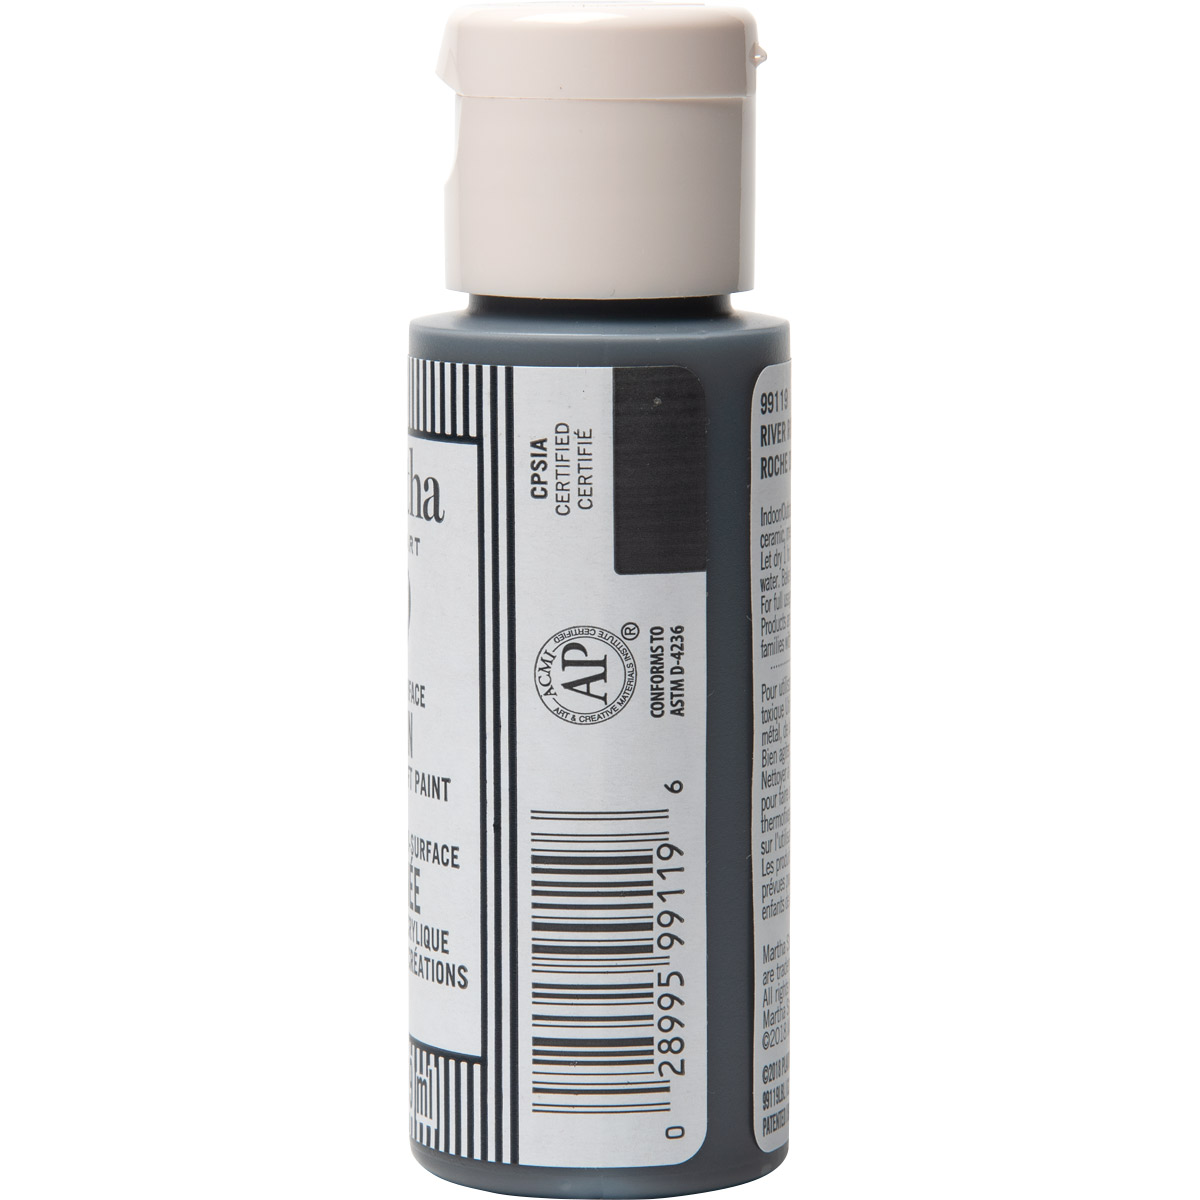 Martha Stewart ® Multi-Surface Satin Acrylic Craft Paint CPSIA - River Rock, 2 oz. - 99119